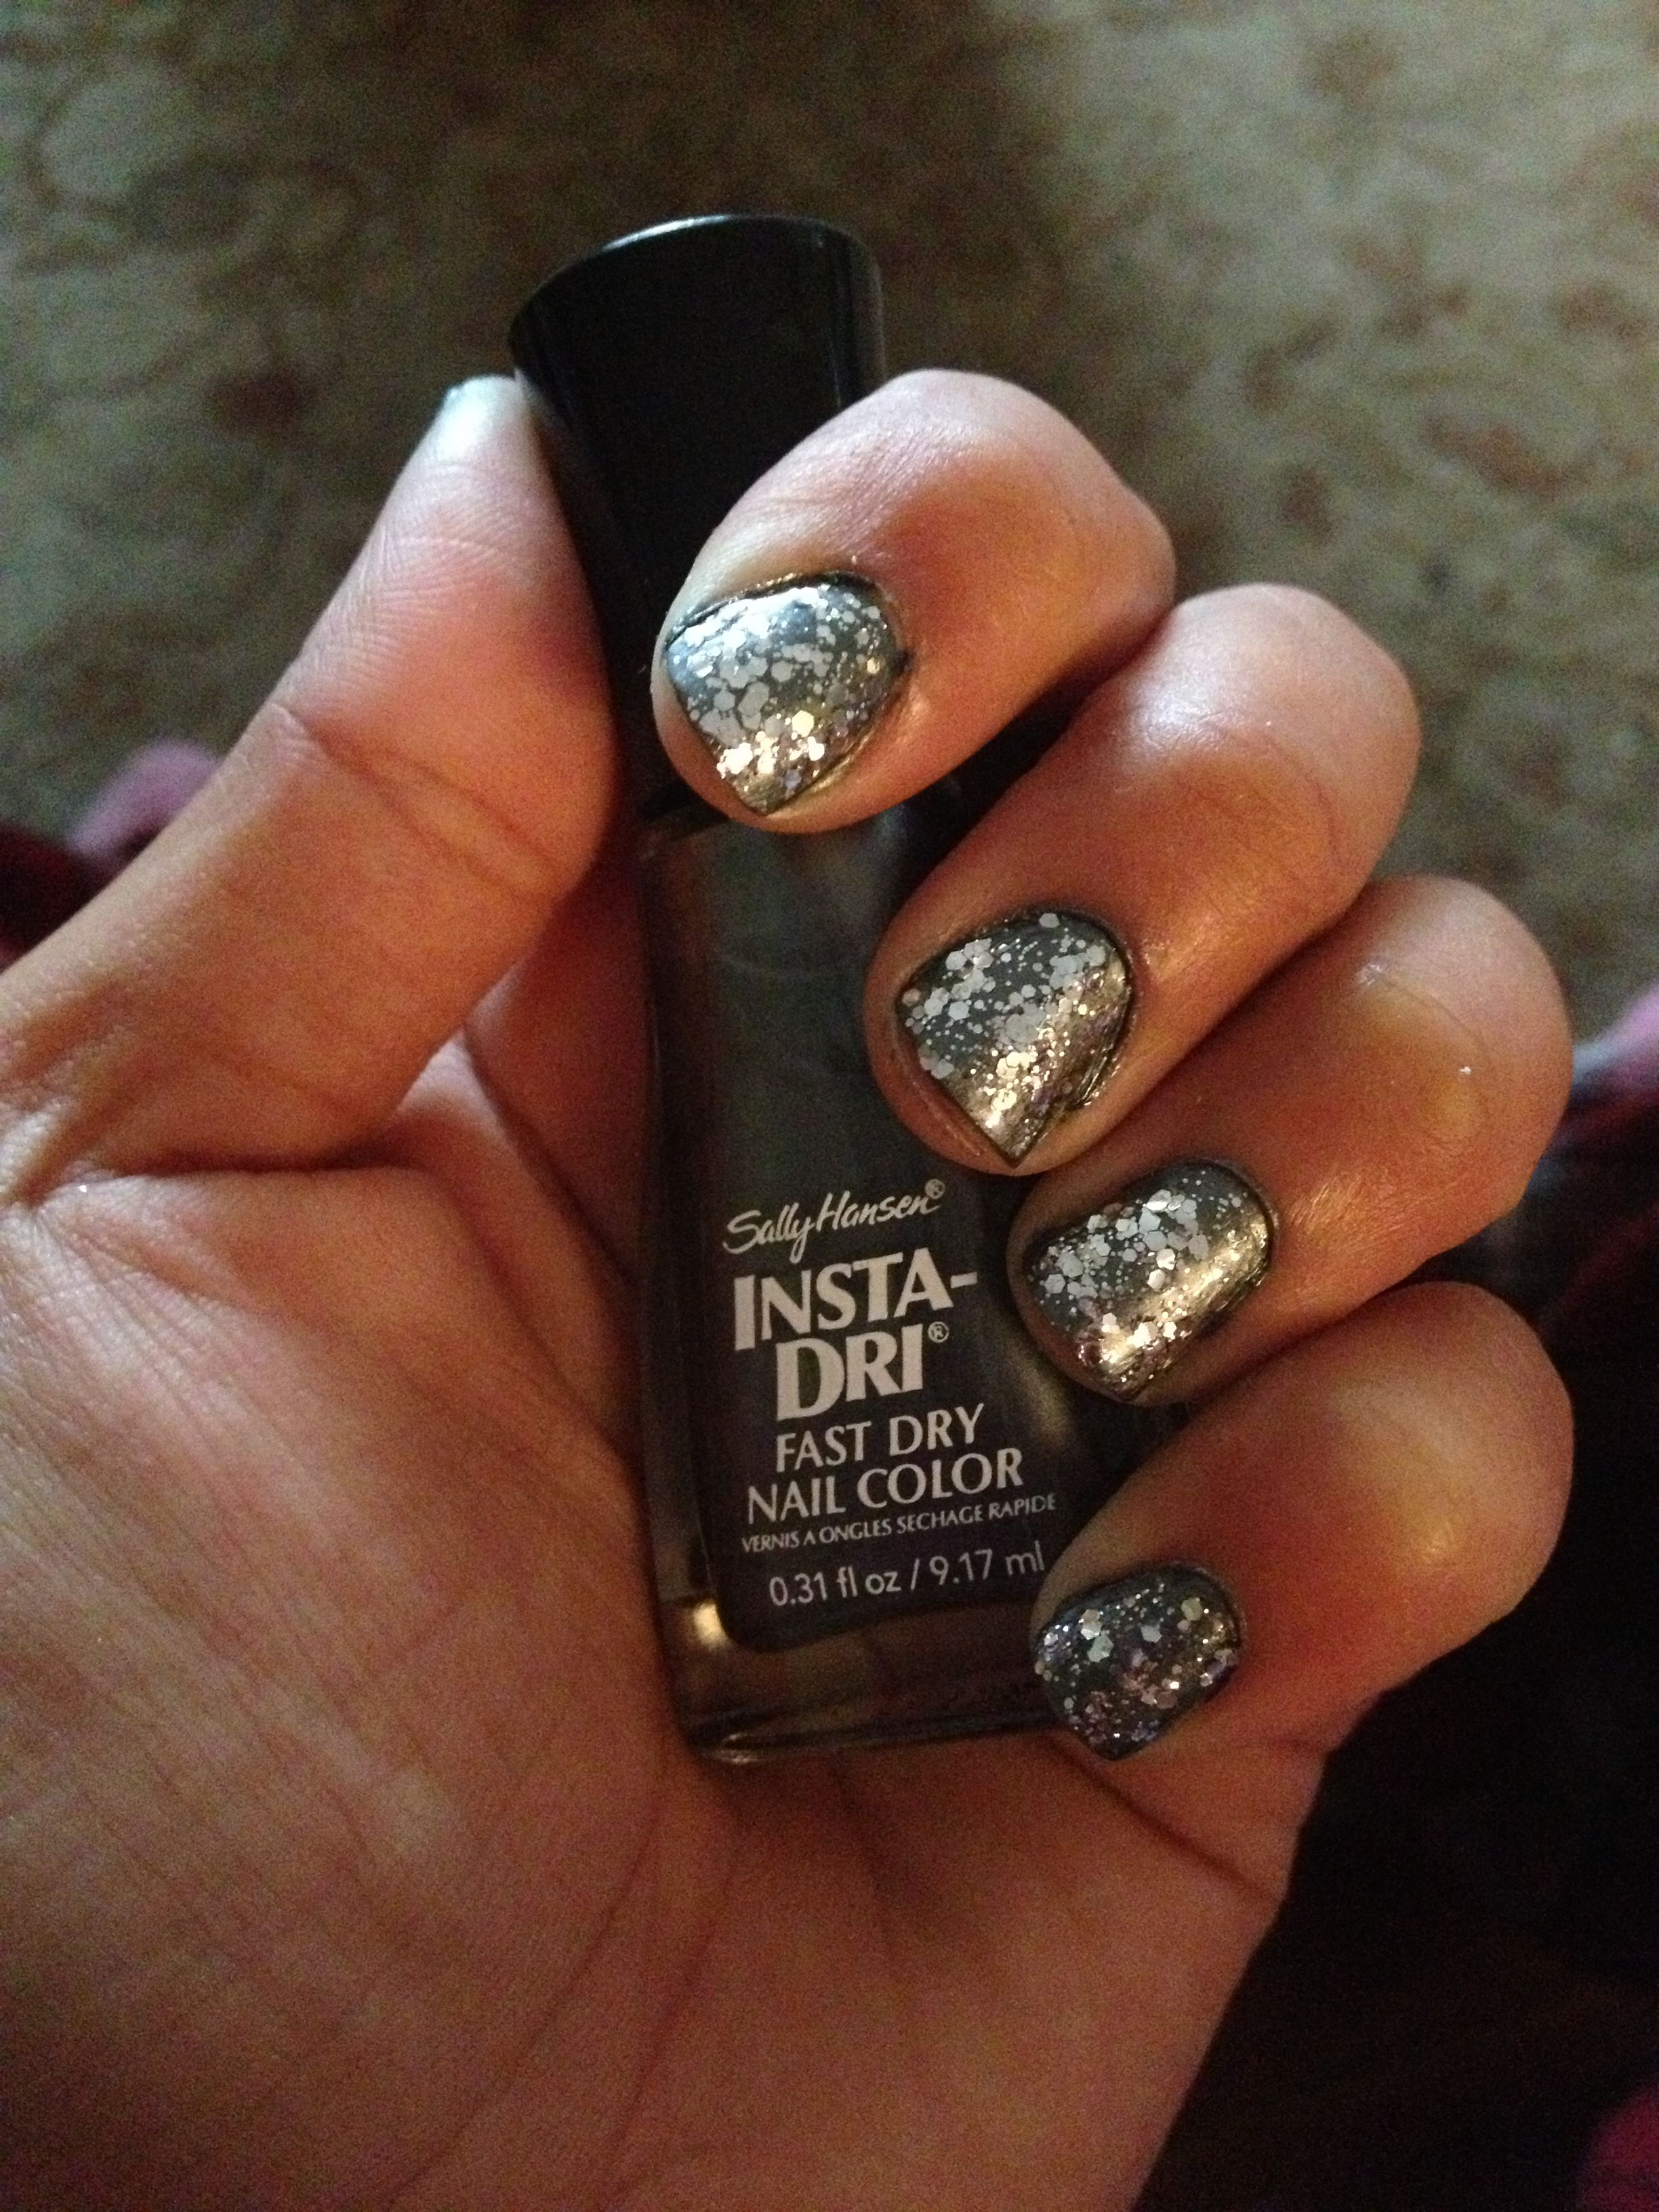 for my Halloween costume :) | Dry nails, Dry nails fast ...